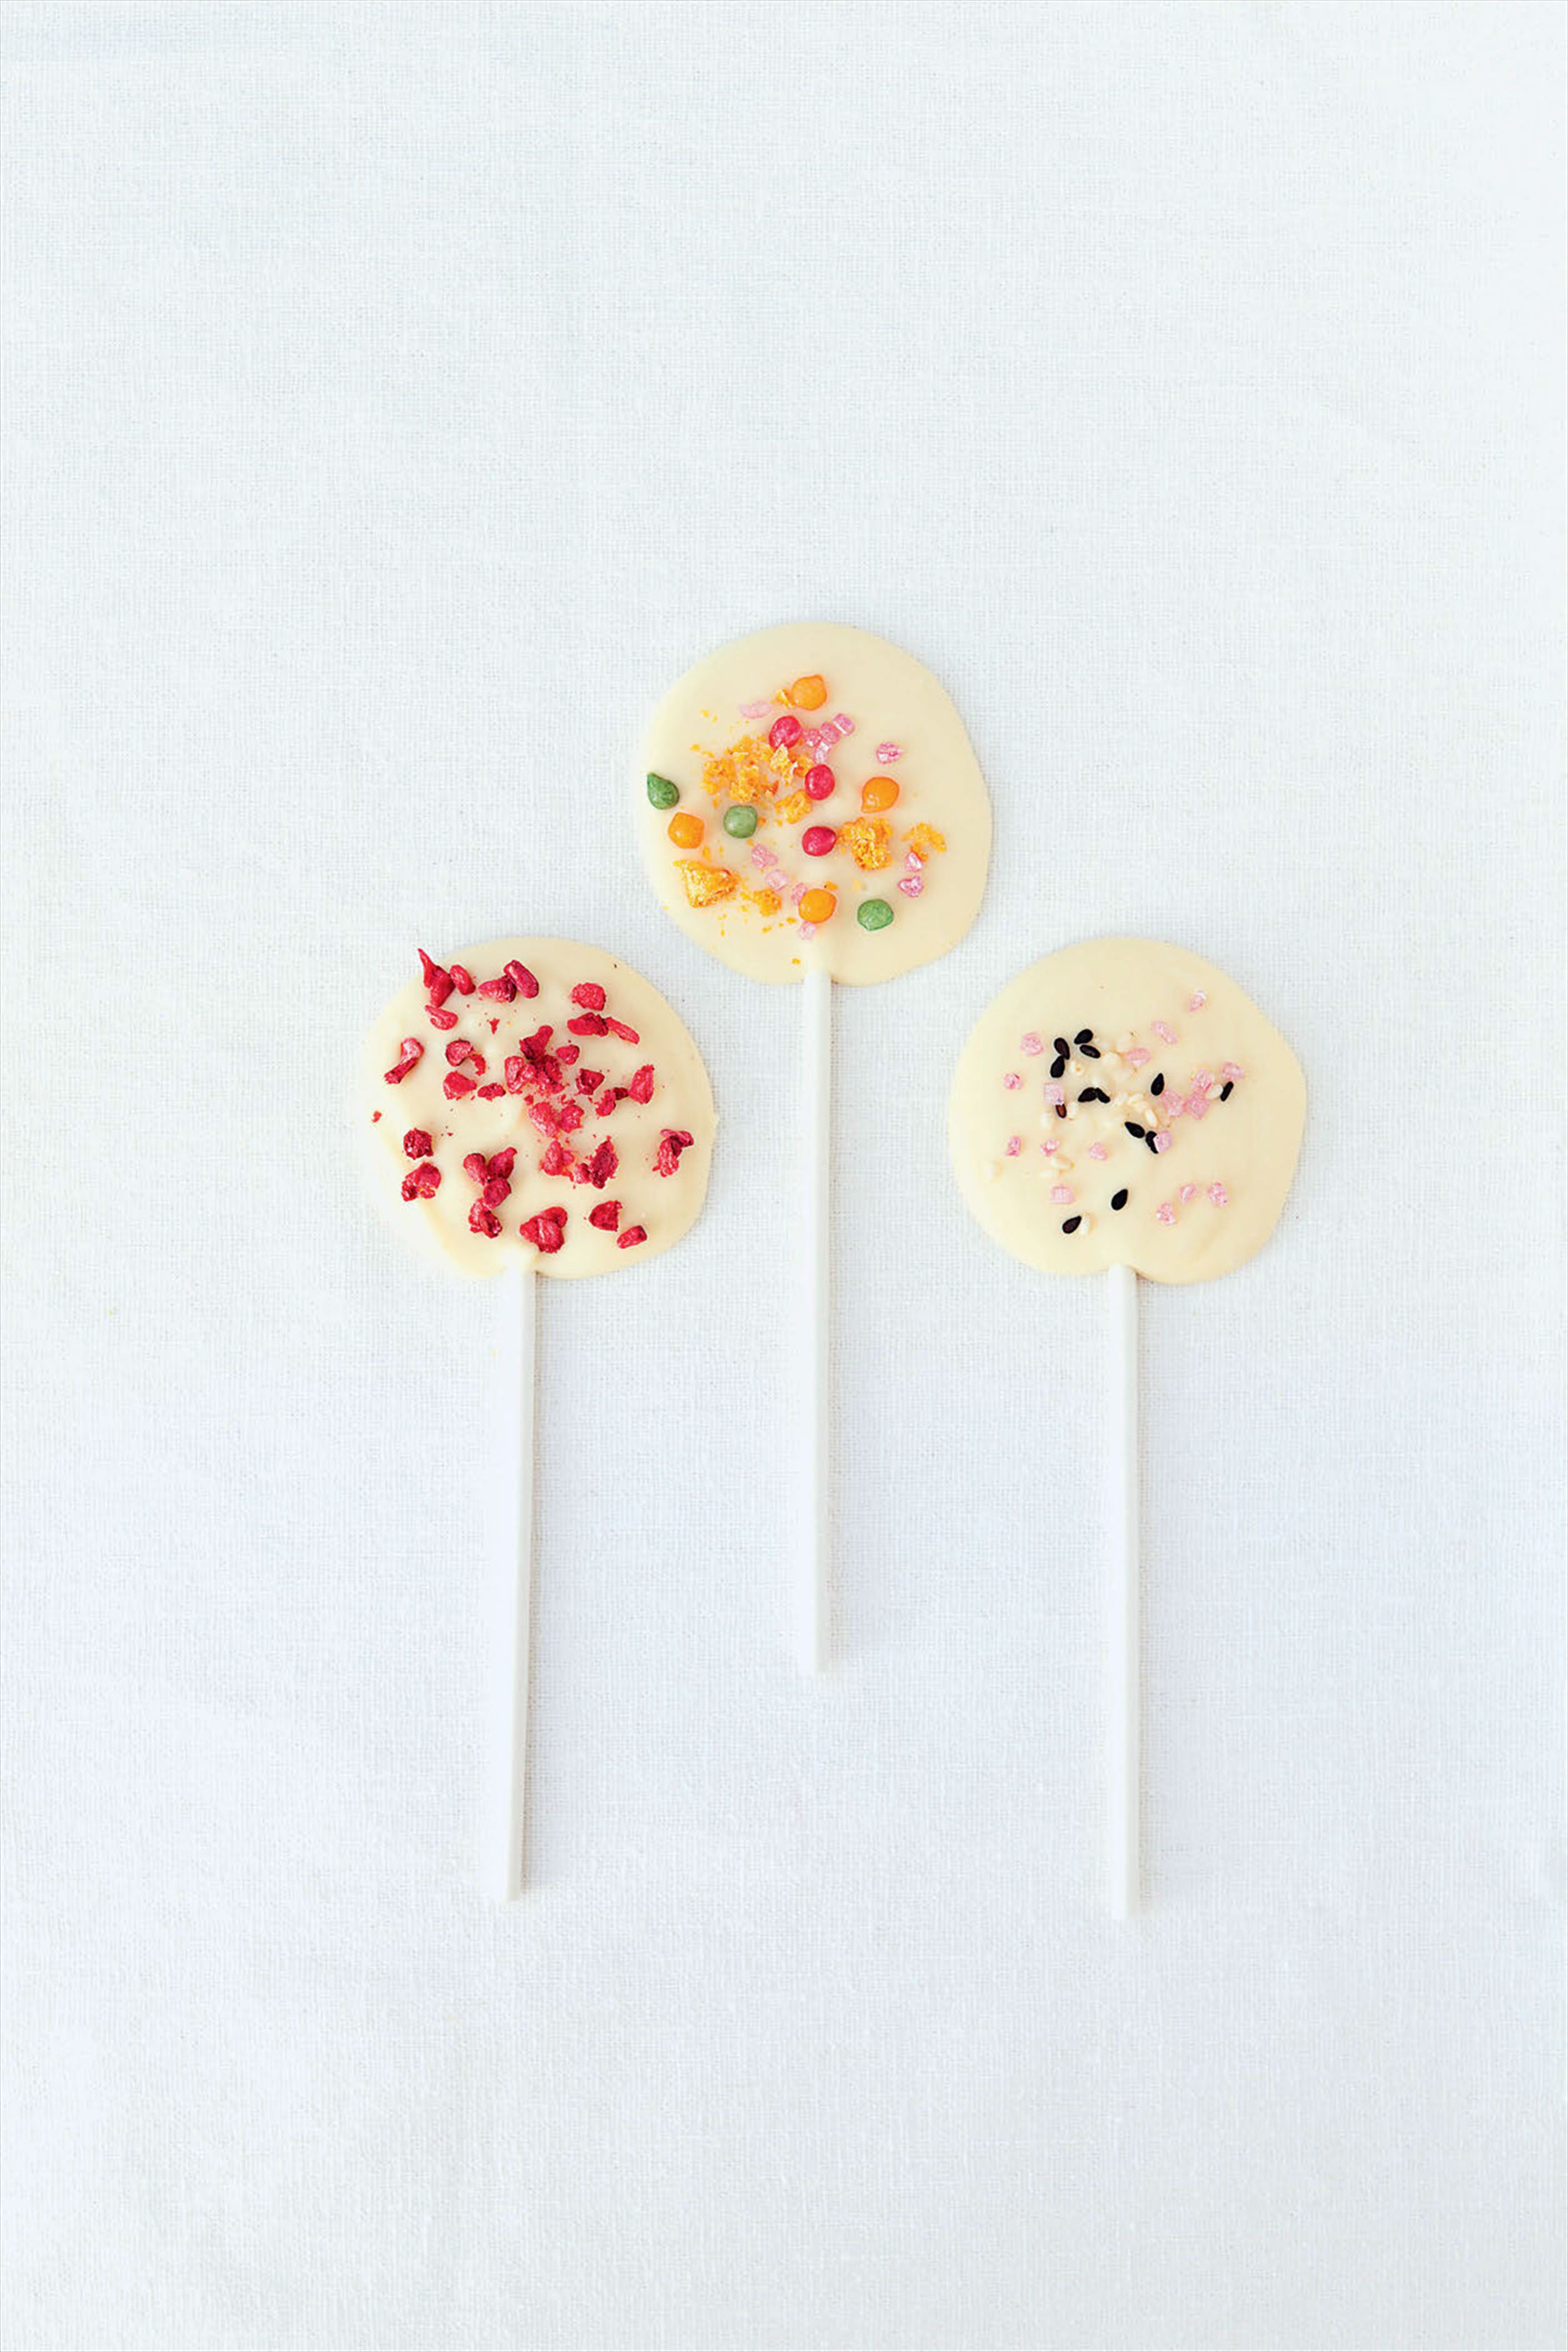 Chocolate lollipops with toppings and sprinkles